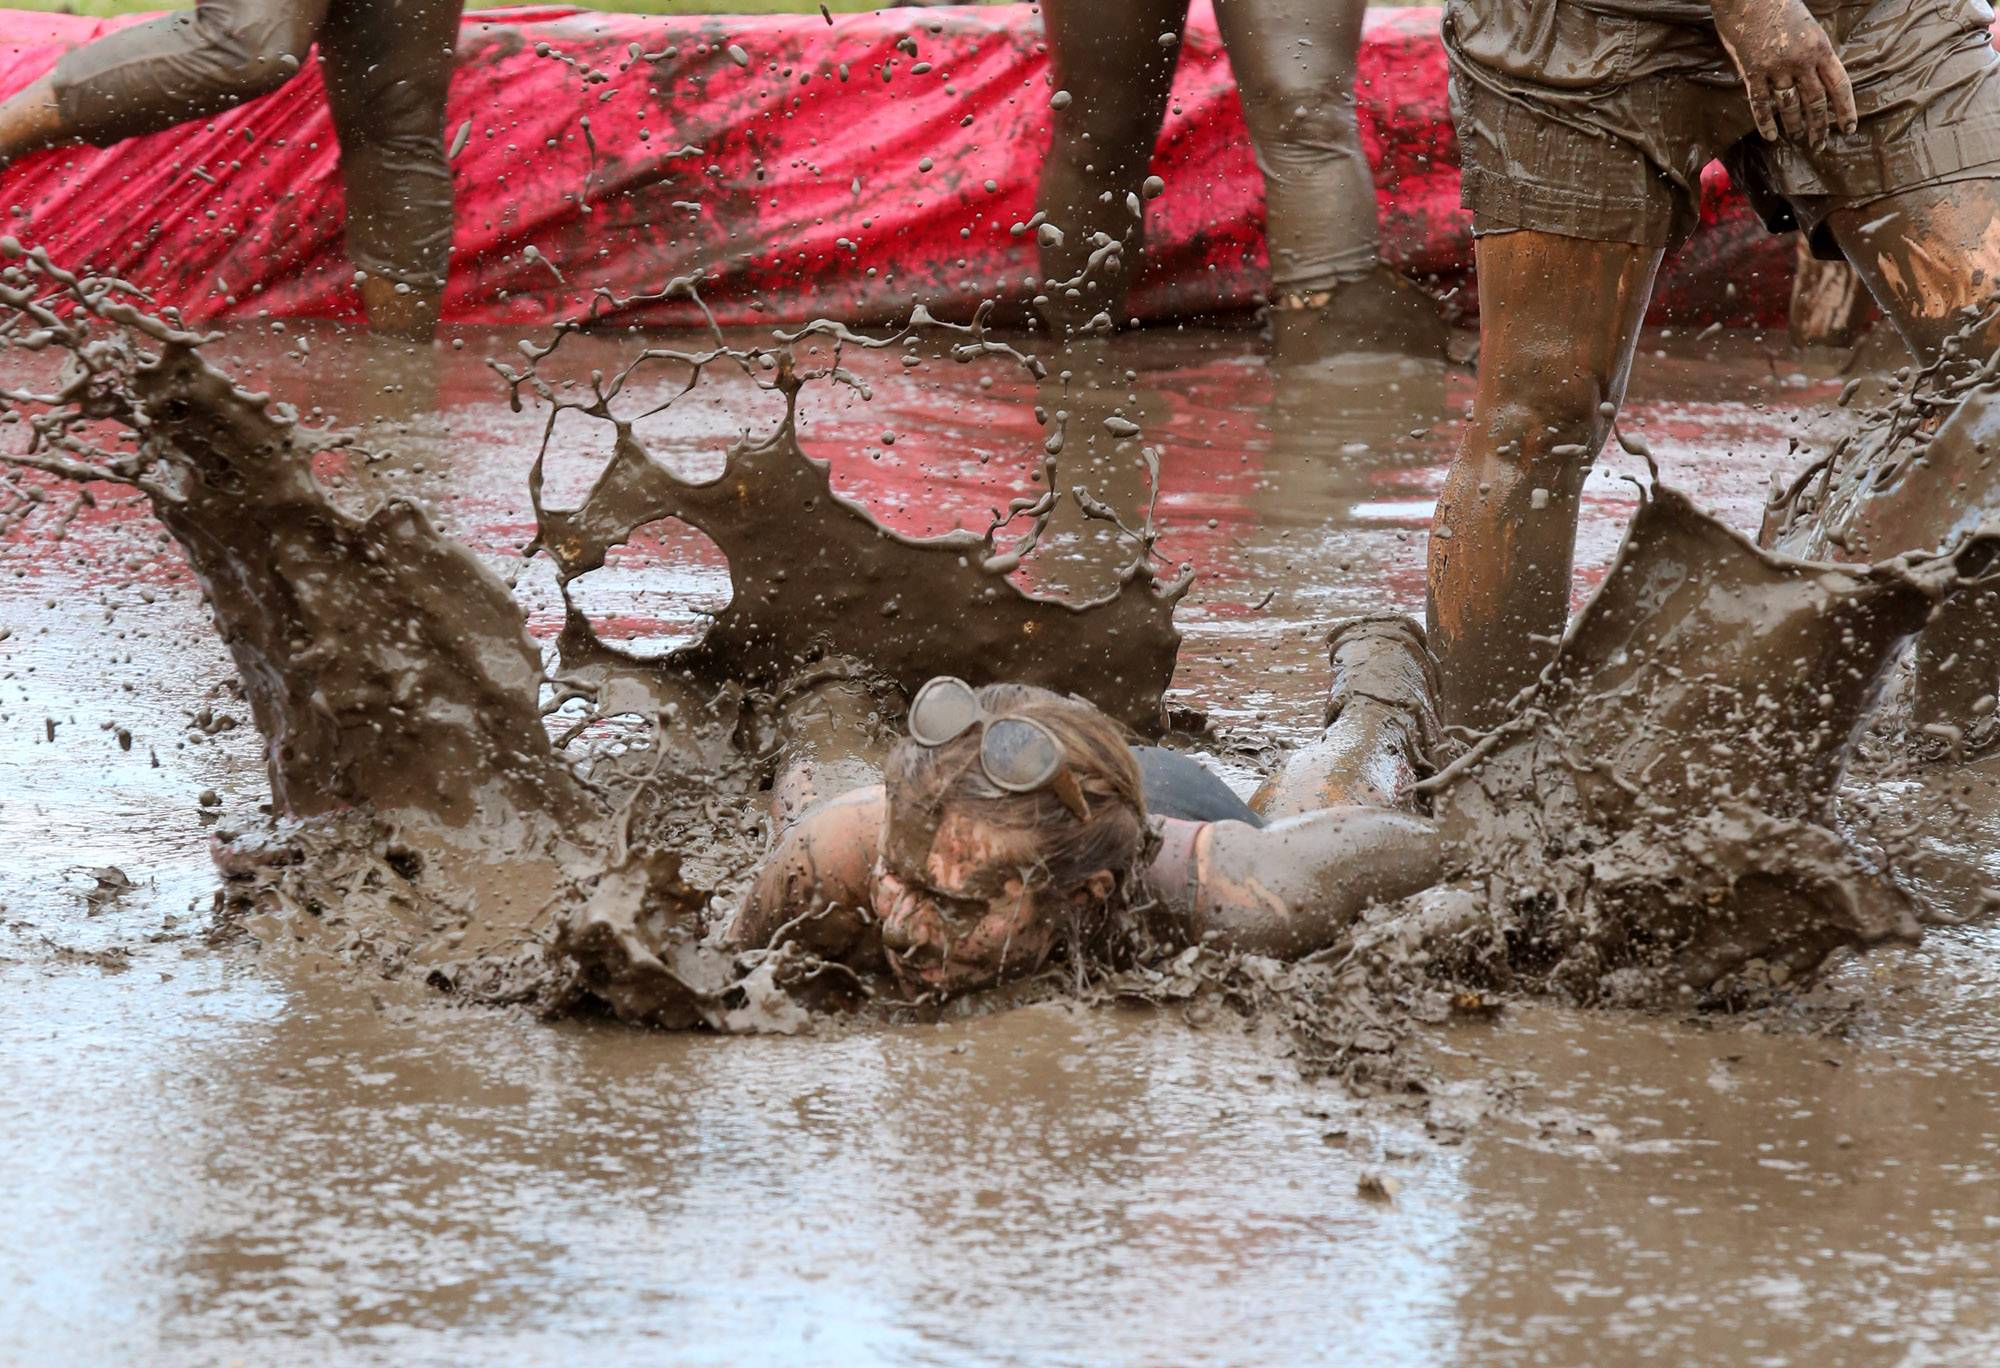 Nicole Moss of Kenosha, Wis., falls in muddy water near the finish of the Dirty Girl Mud Run Saturday at the Lake County Fairgrounds in Grayslake.